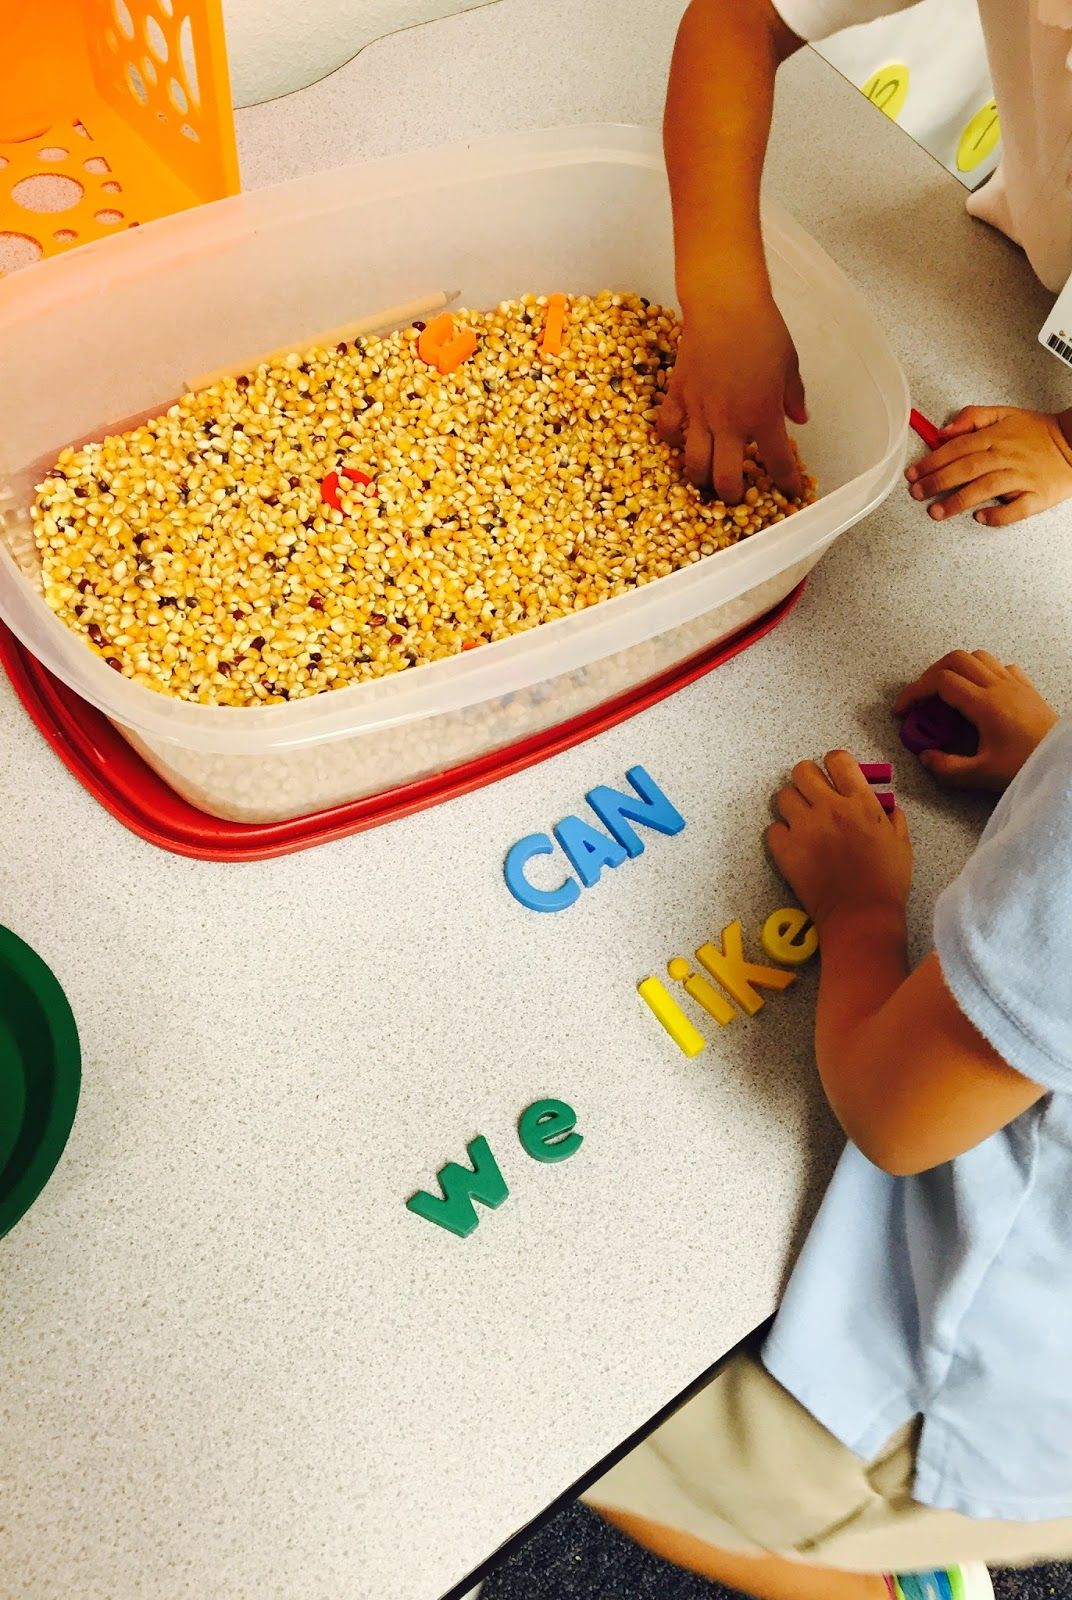 Sight Word Sensory Tub Activity Provide Students With A List Of Words And Have Them Search For